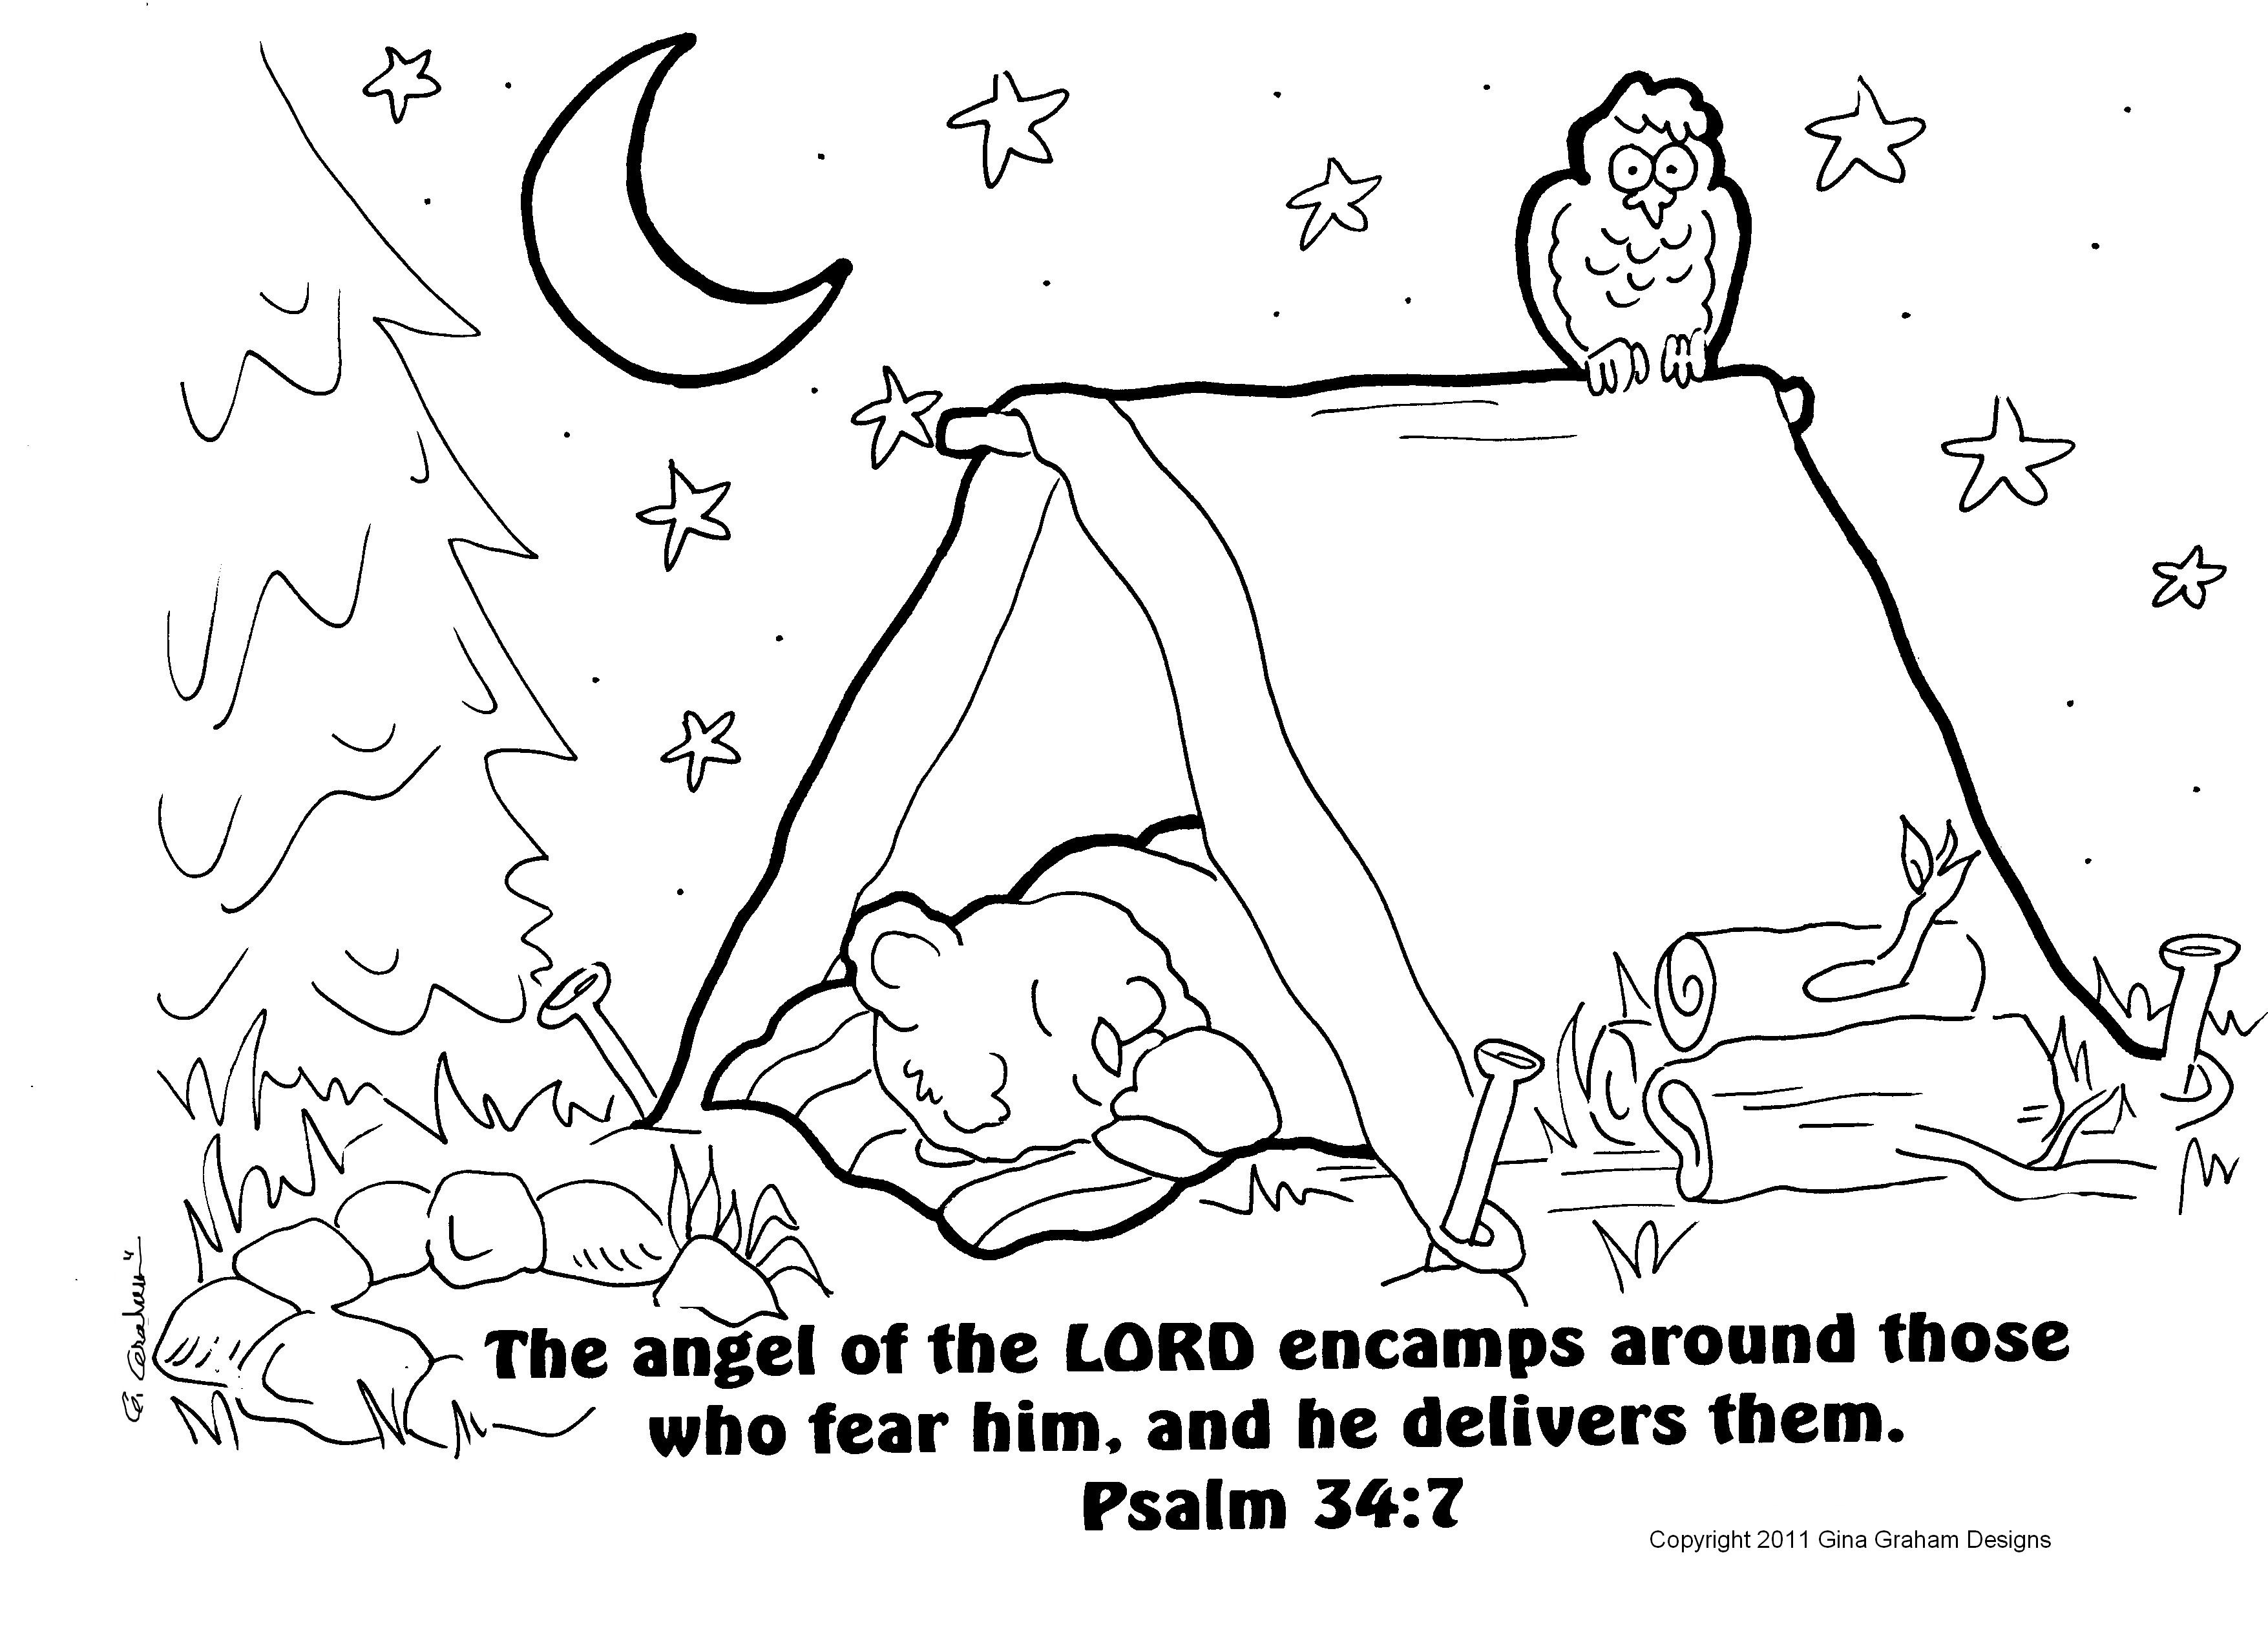 Going Camping Coloring Sheet To Print Out With Bible Verse